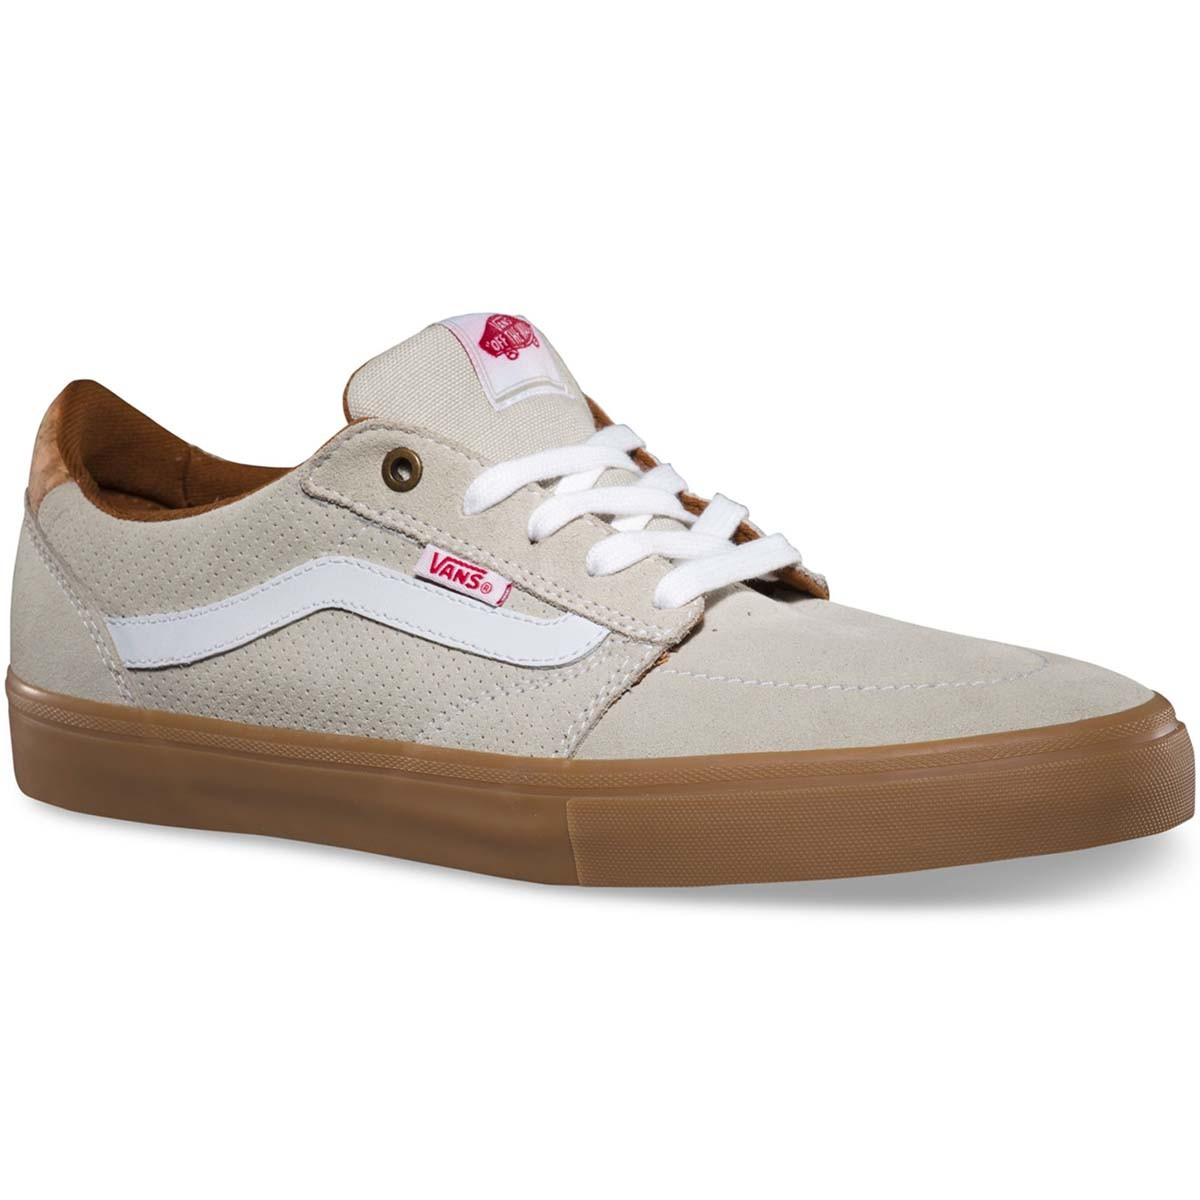 Vans Lindero Shoes - Cork Oatmeal/Gum - 8.0